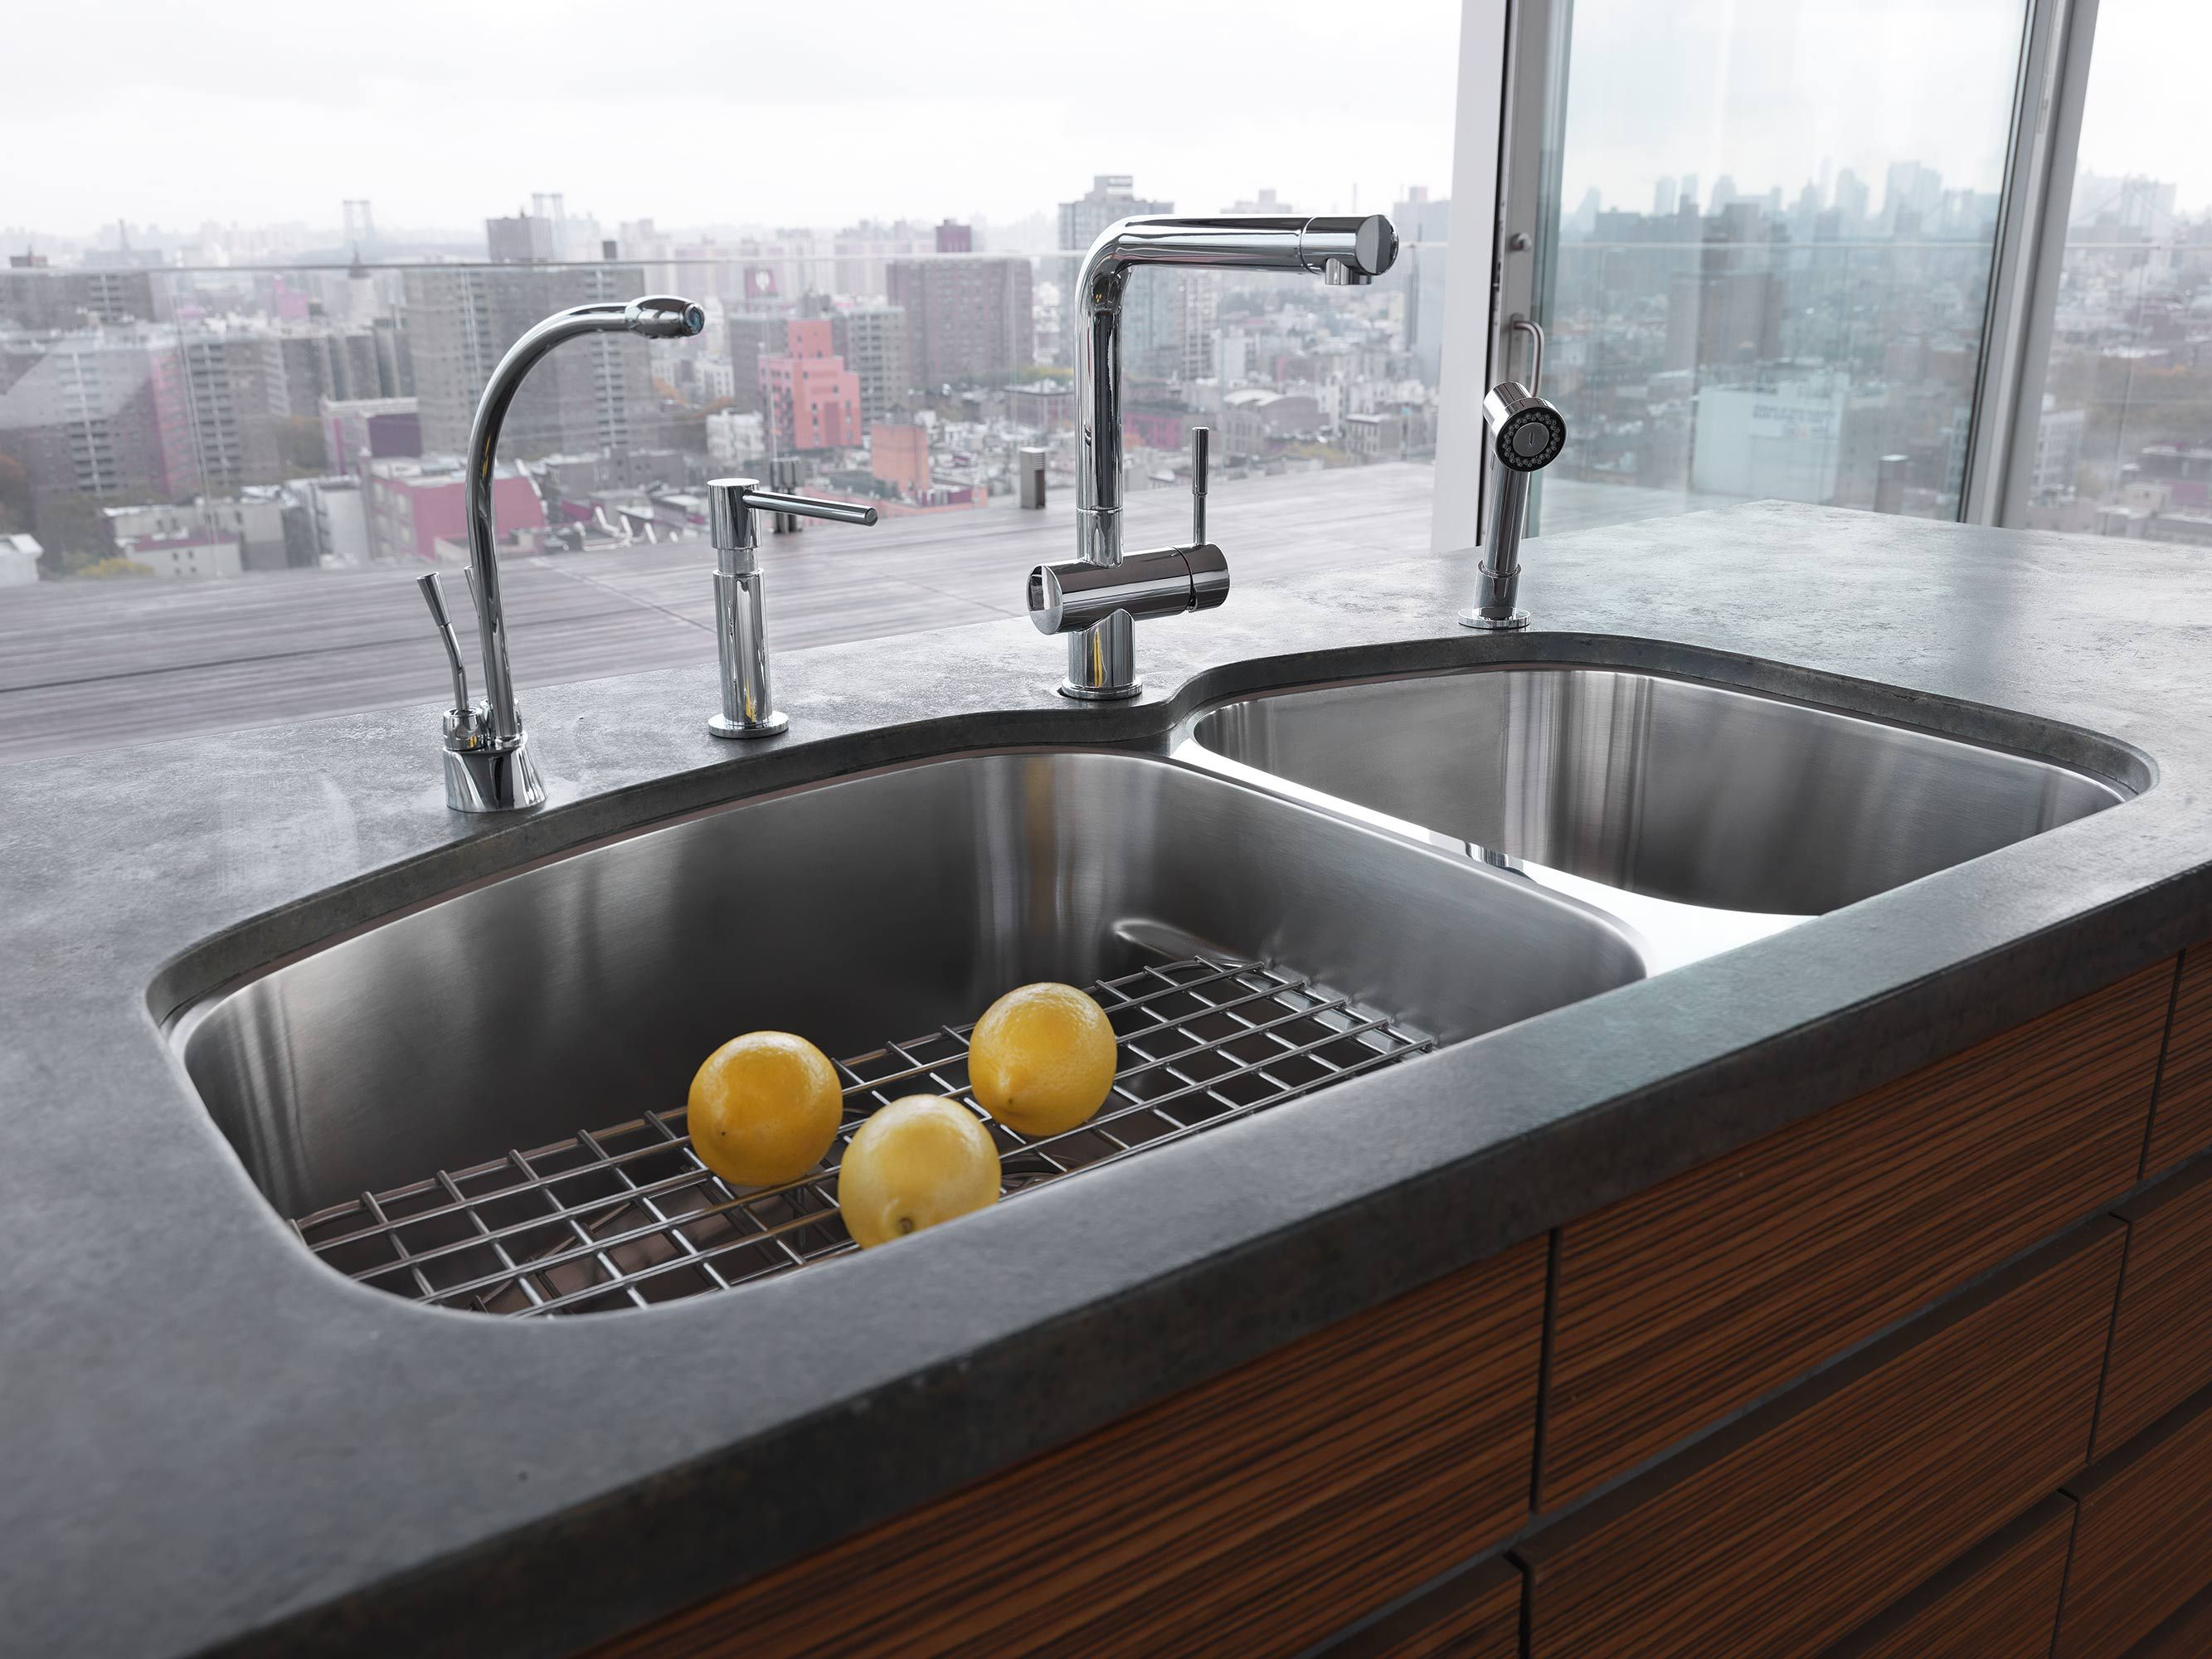 Astounding Franke Products Sinks Faucets Franke Kitchen Systems Home Interior And Landscaping Ologienasavecom